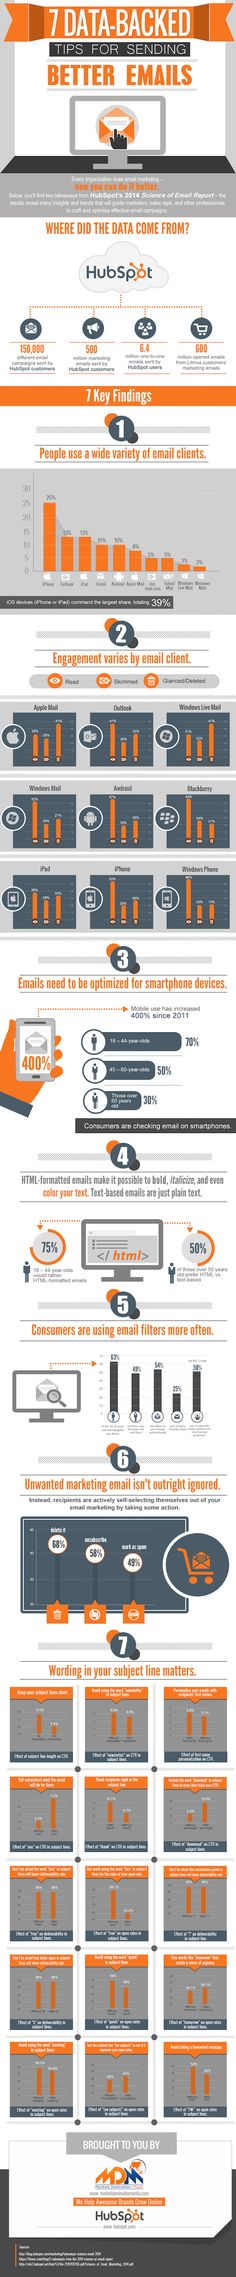 [INFOGRAPHIC] Send Better E-mails Using These 7 Data-Backed Tips: Clients; Format; Subject Line; more...